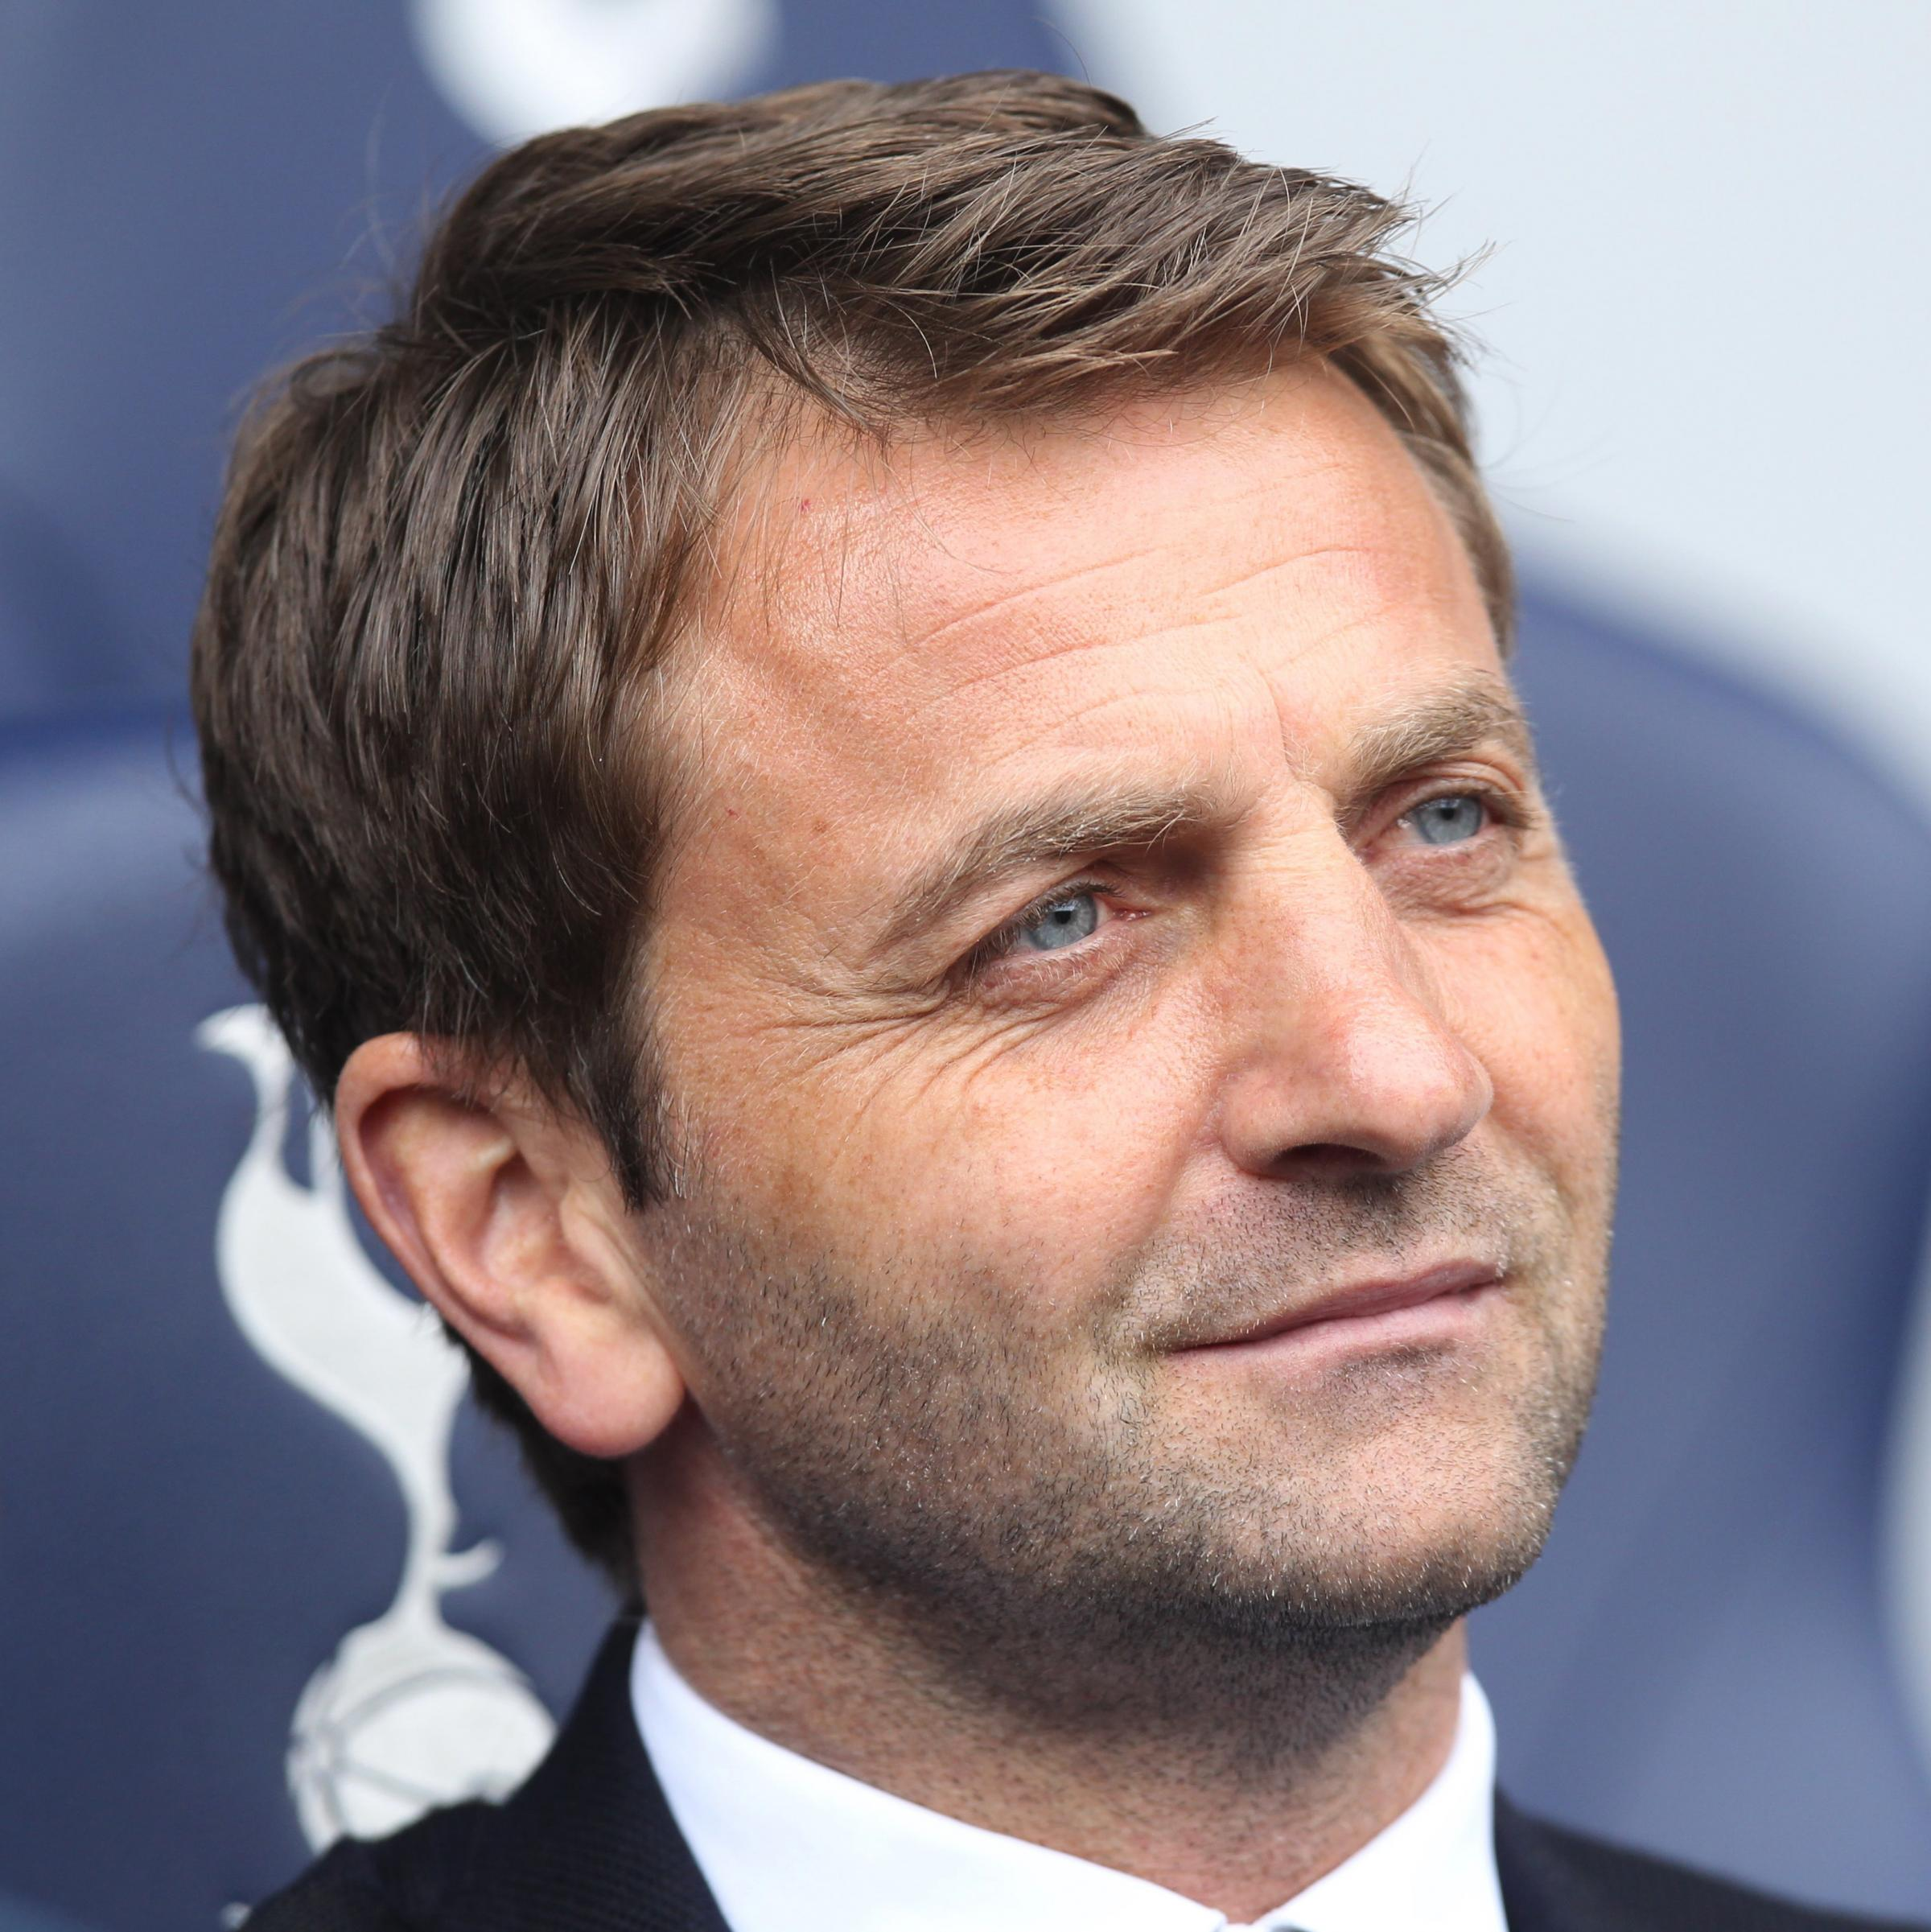 Tim Sherwood was not surprised by his sacking. Picture: Action Images